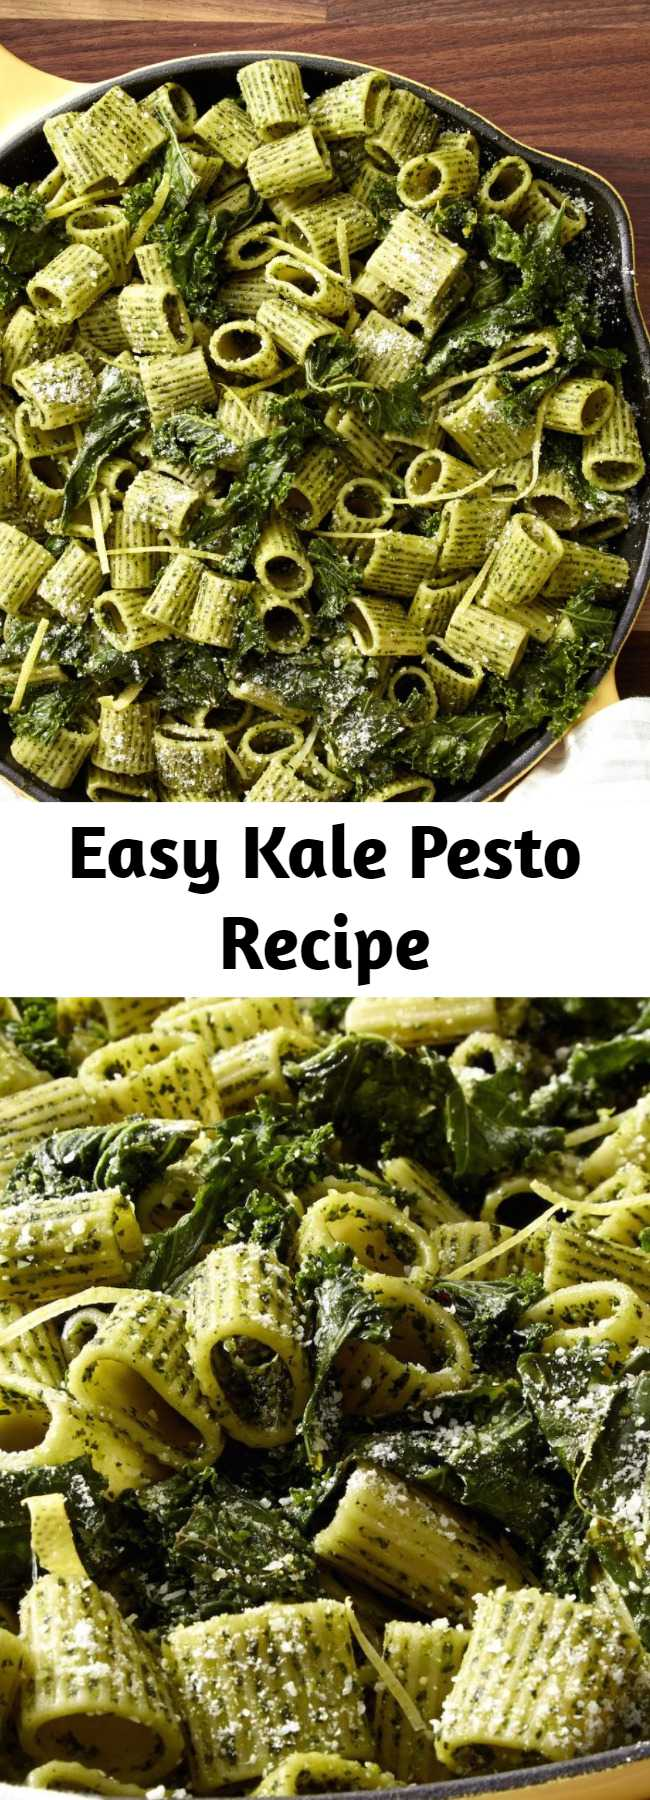 Easy Kale Pesto Recipe - Looking for an easy pesto recipe? This Kale Pesto recipe is the best. If you're a kale-aholic, this dark-green pesto will become an instant fave. This recipe makes enough sauce for a pound of pasta!